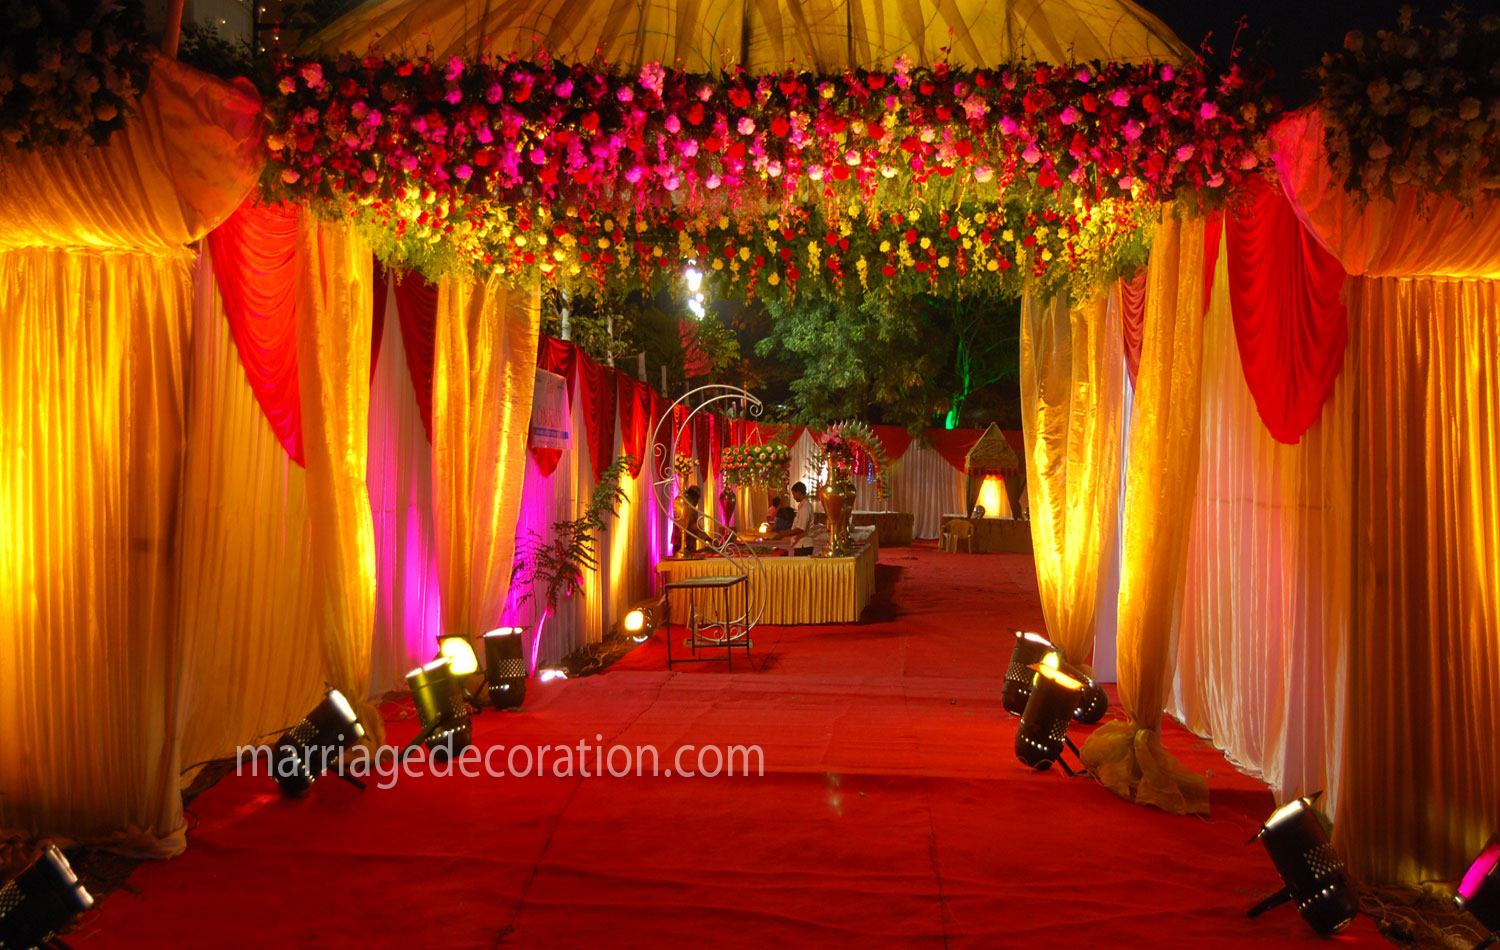 Wedding decorators romantic decoration for Marriage decoration photos